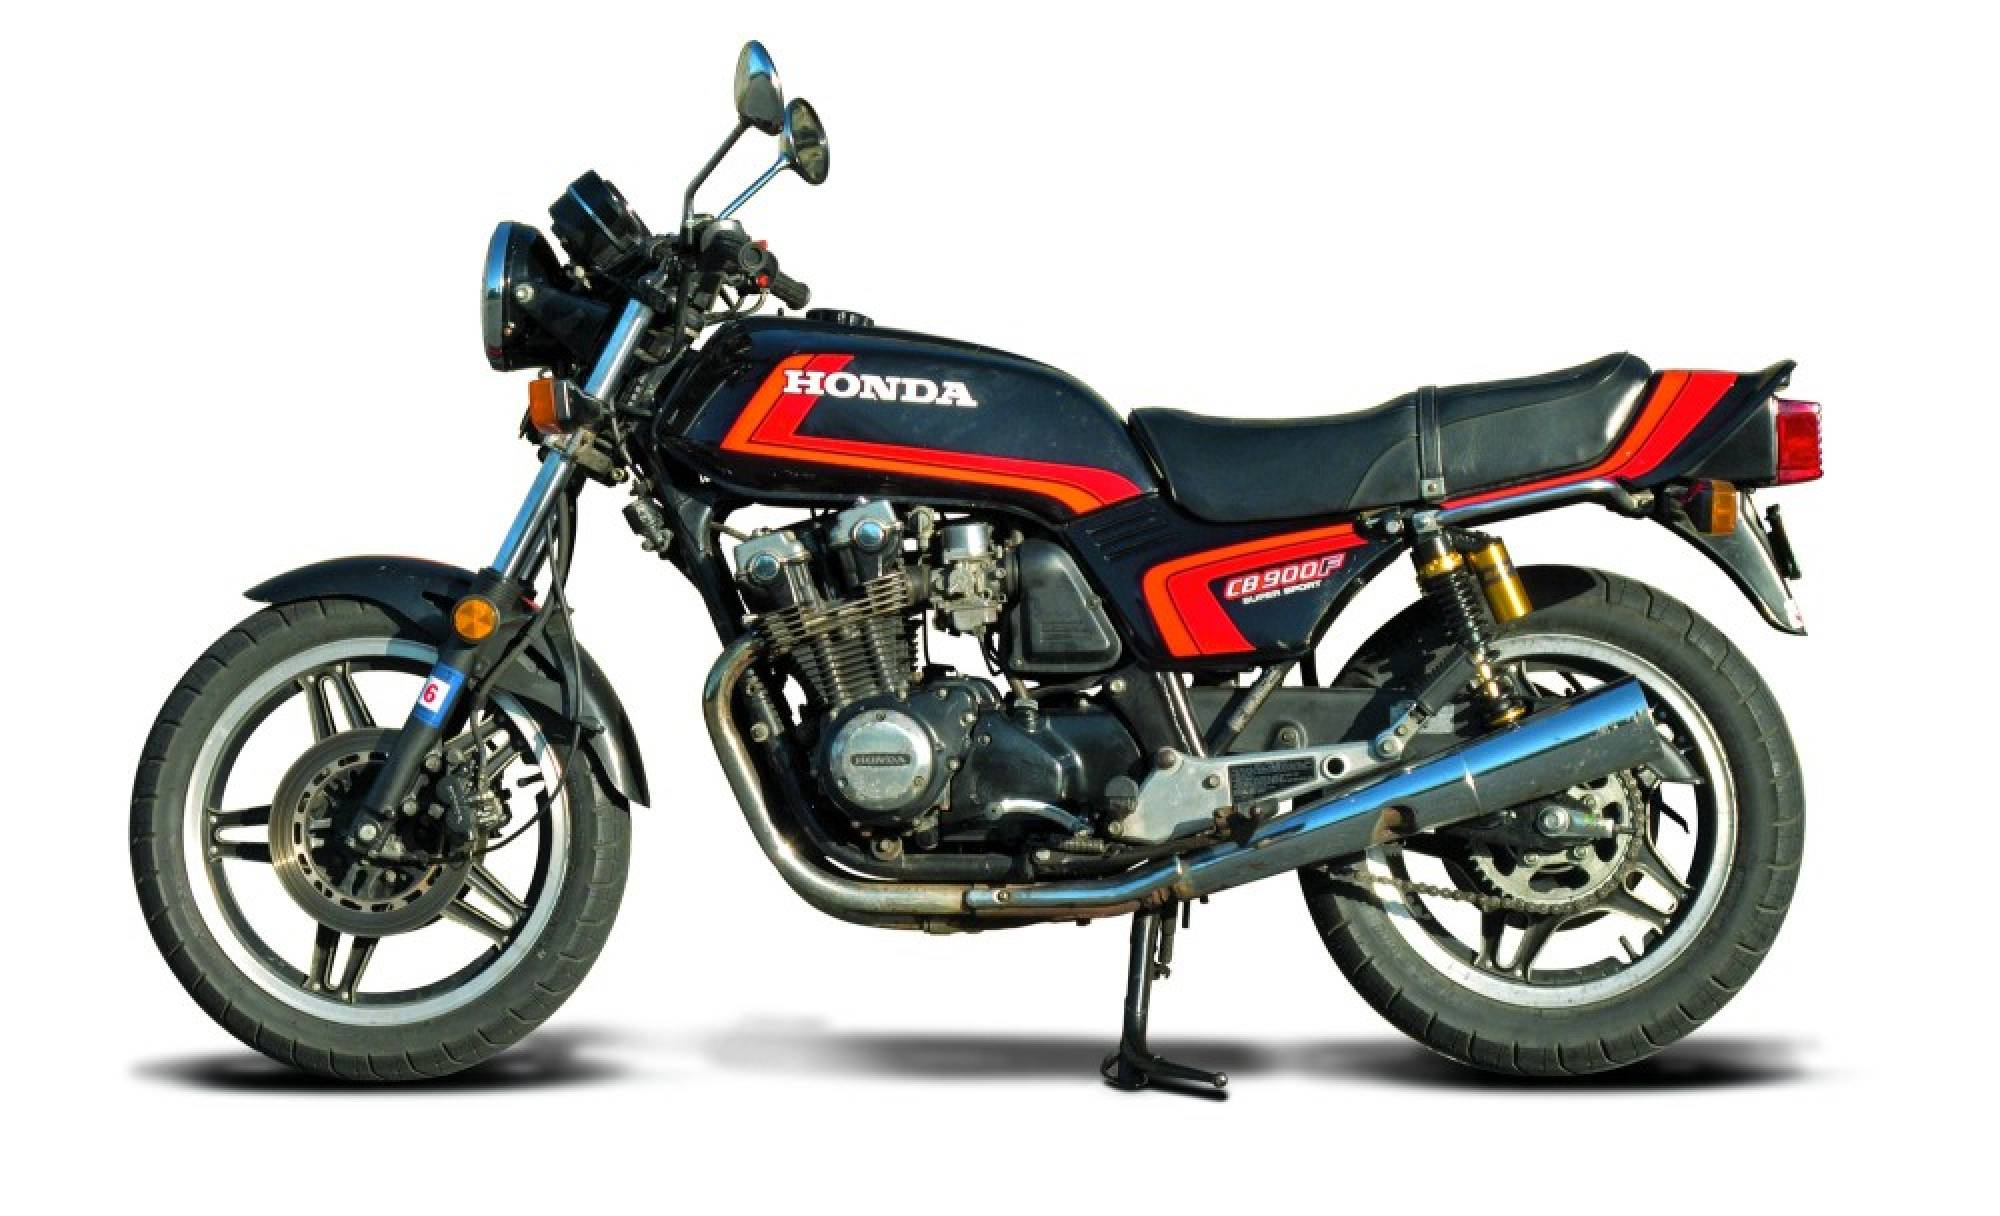 HONDA CB900F SUPER SPORT PARTS